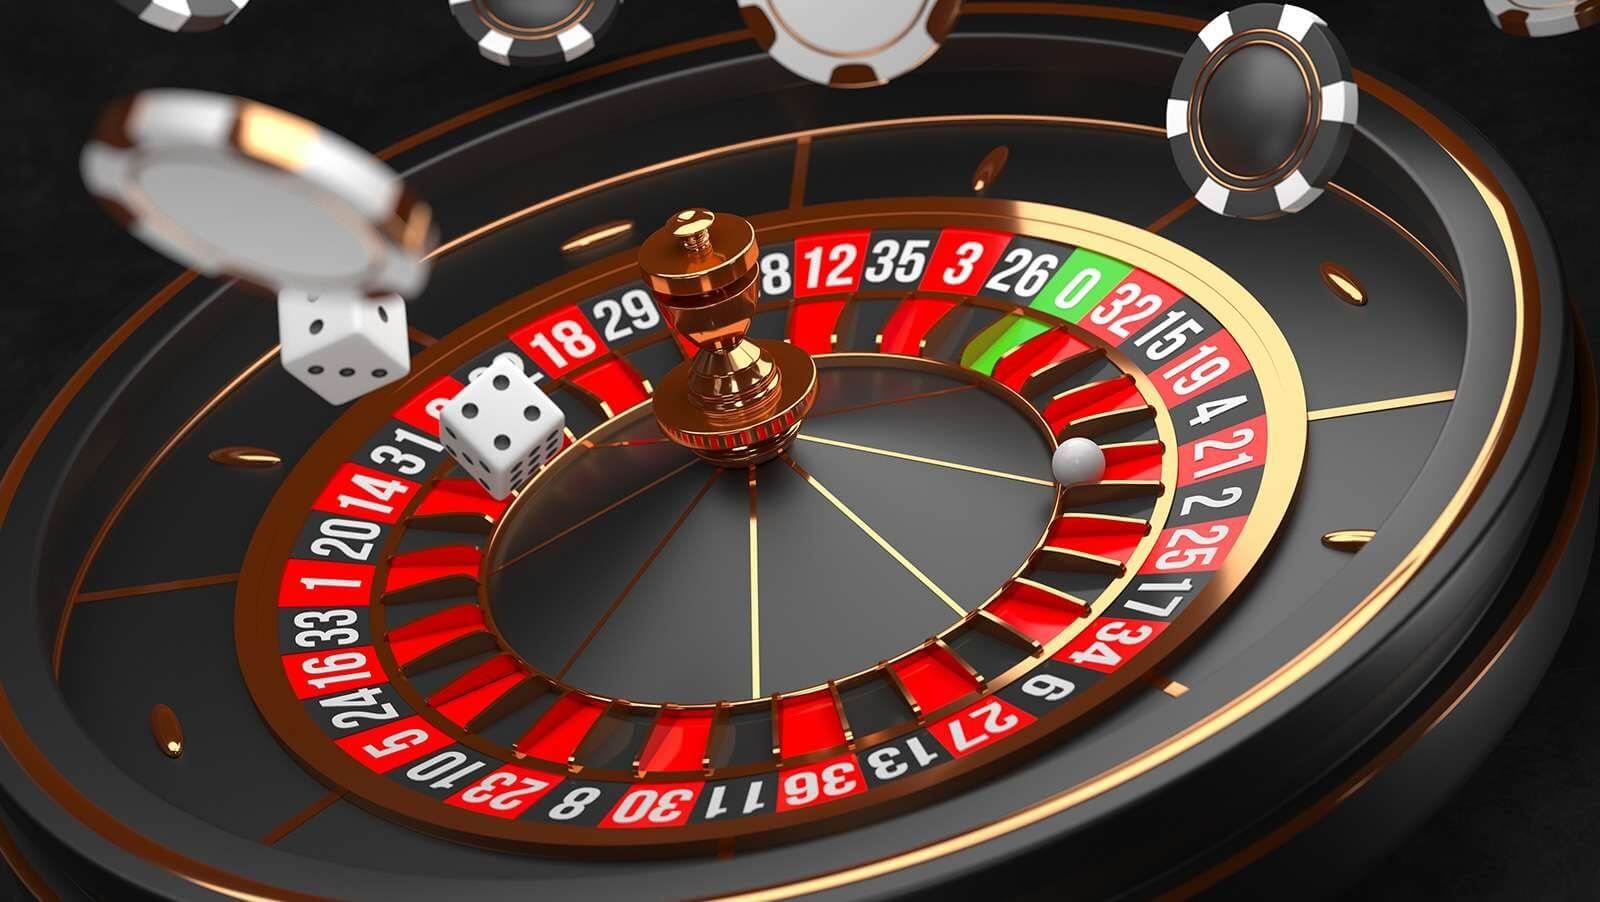 Consider taking gambling-related jobs in Portugal